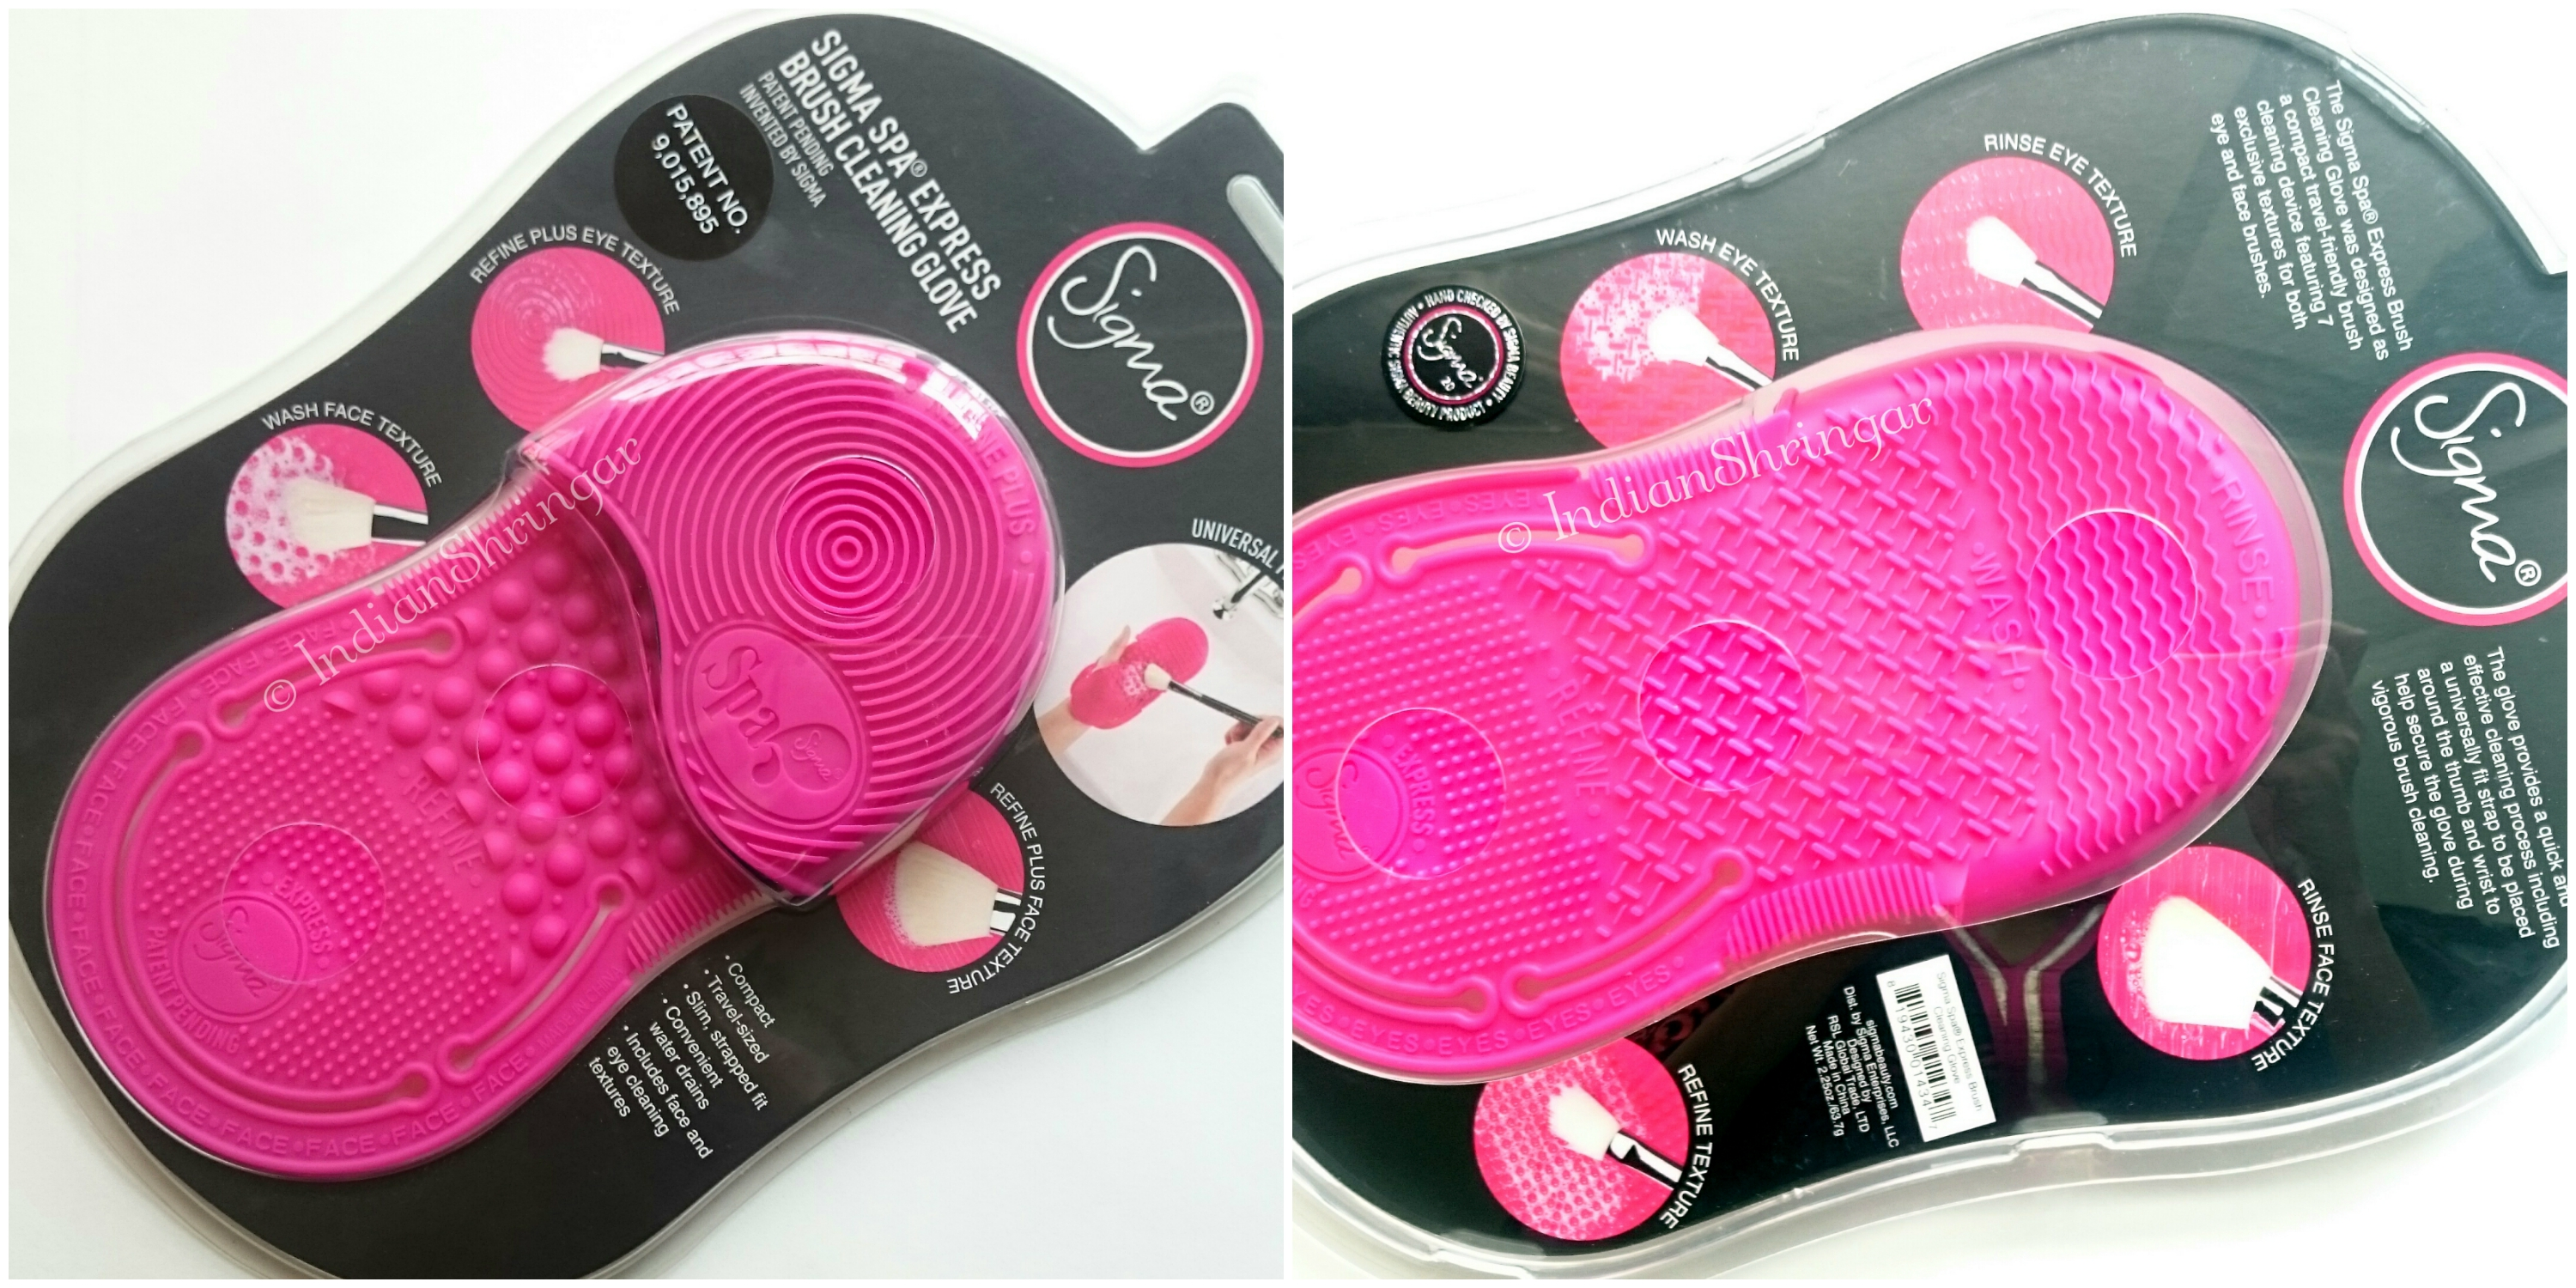 Sigma Spa Express Brush Cleaning Glove Review